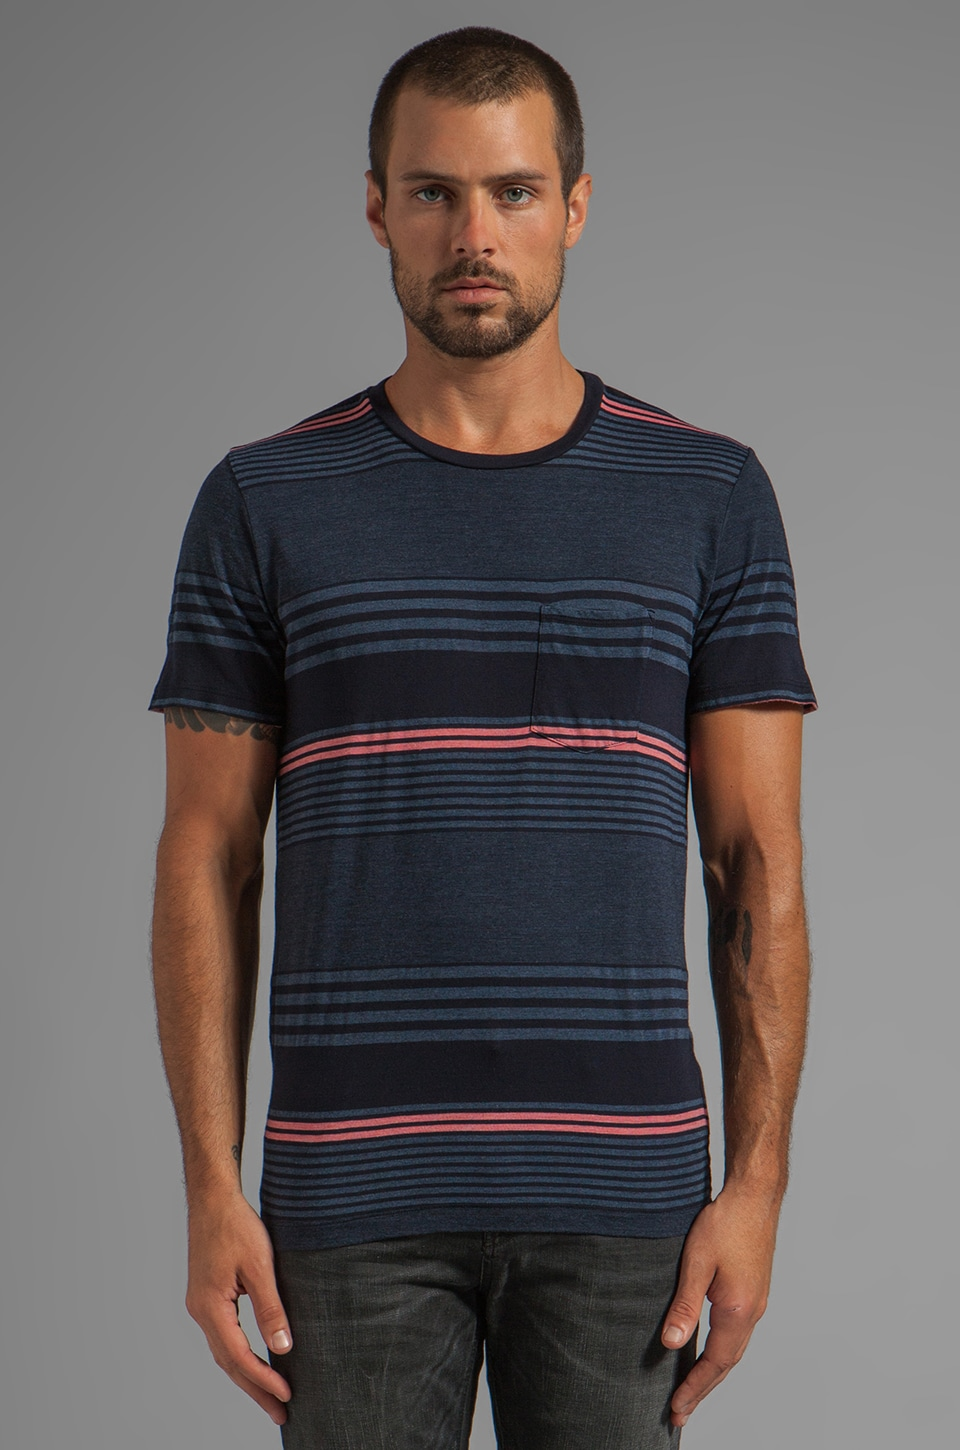 Velvet by Graham & Spencer Bryson Stripe Jersey Tee in Midnite